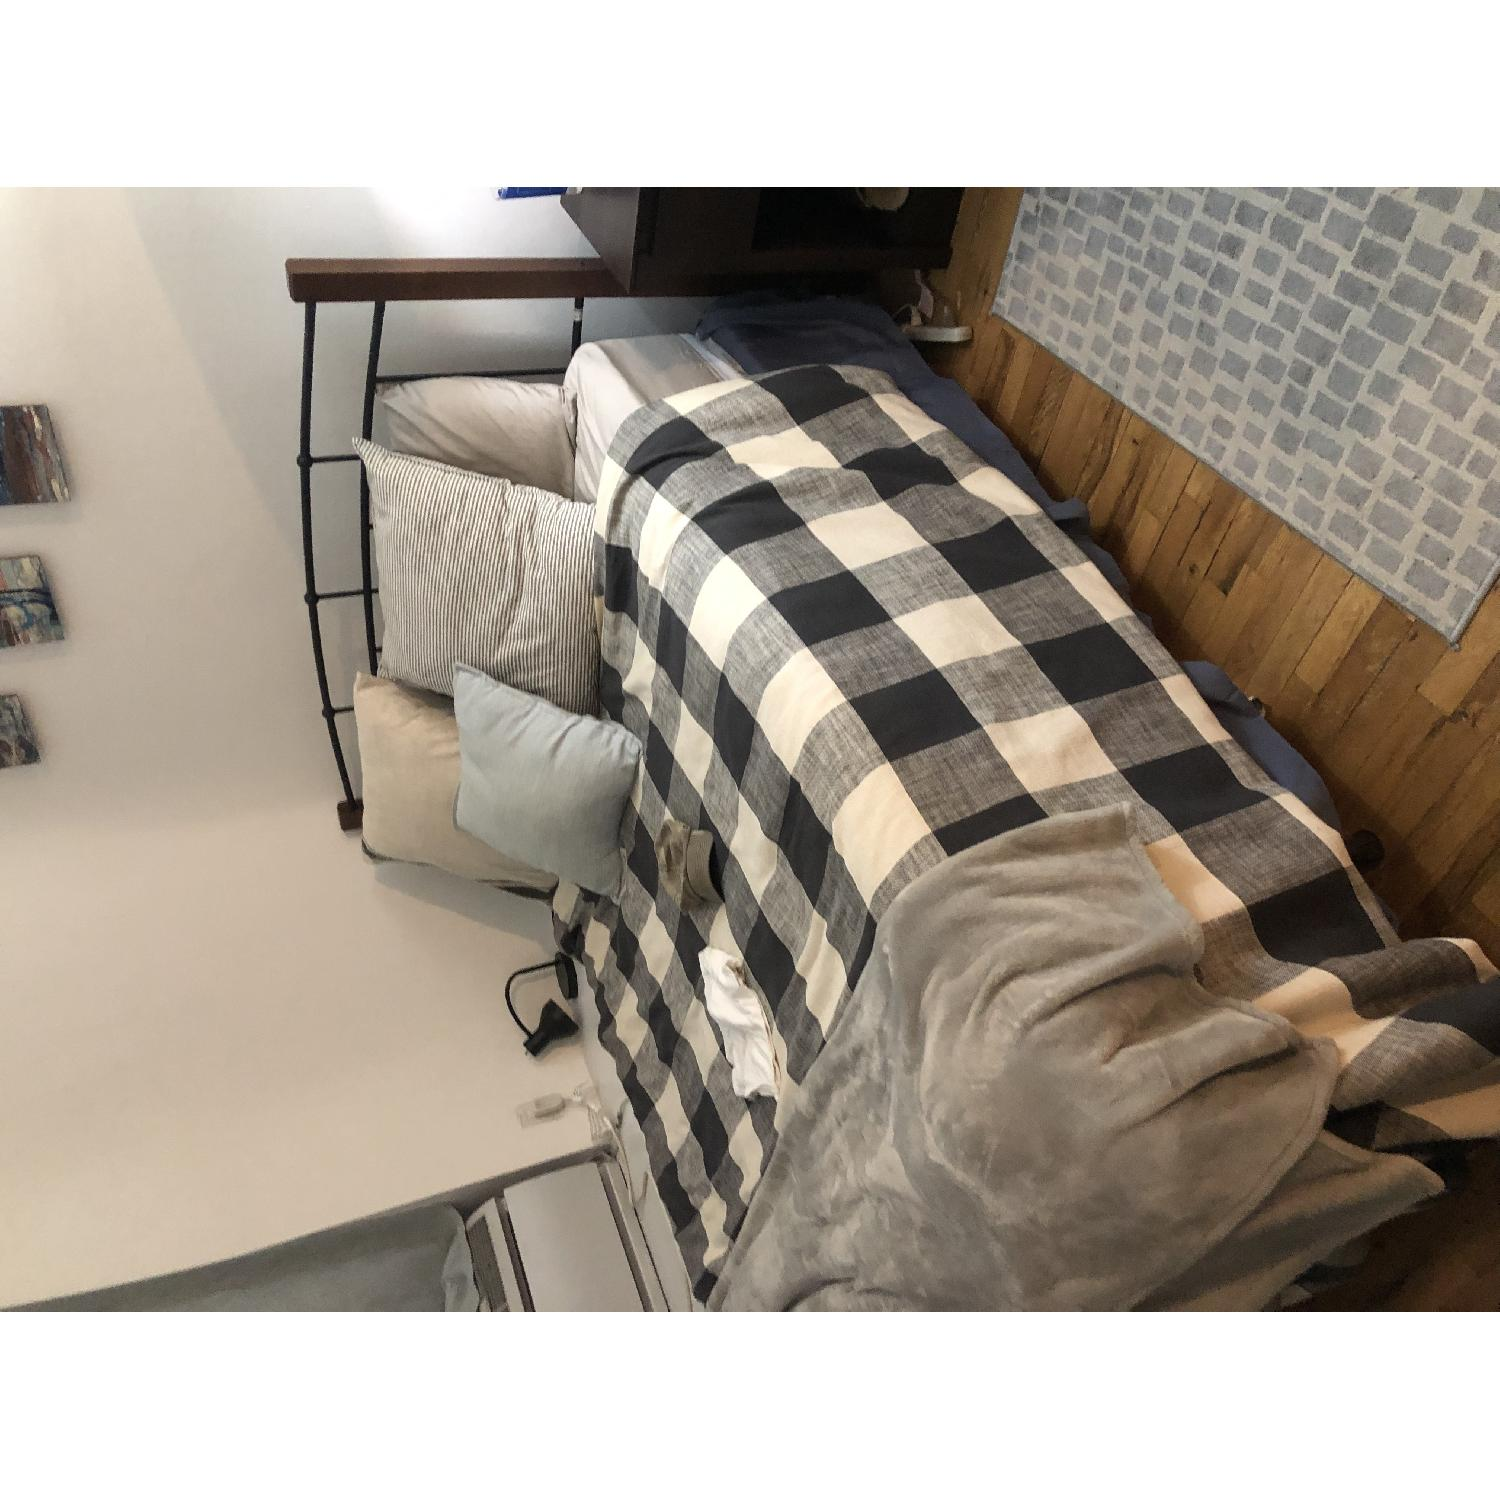 Fine Sealey Furniture Pc Richards Queen Size Bed Aptdeco Gamerscity Chair Design For Home Gamerscityorg